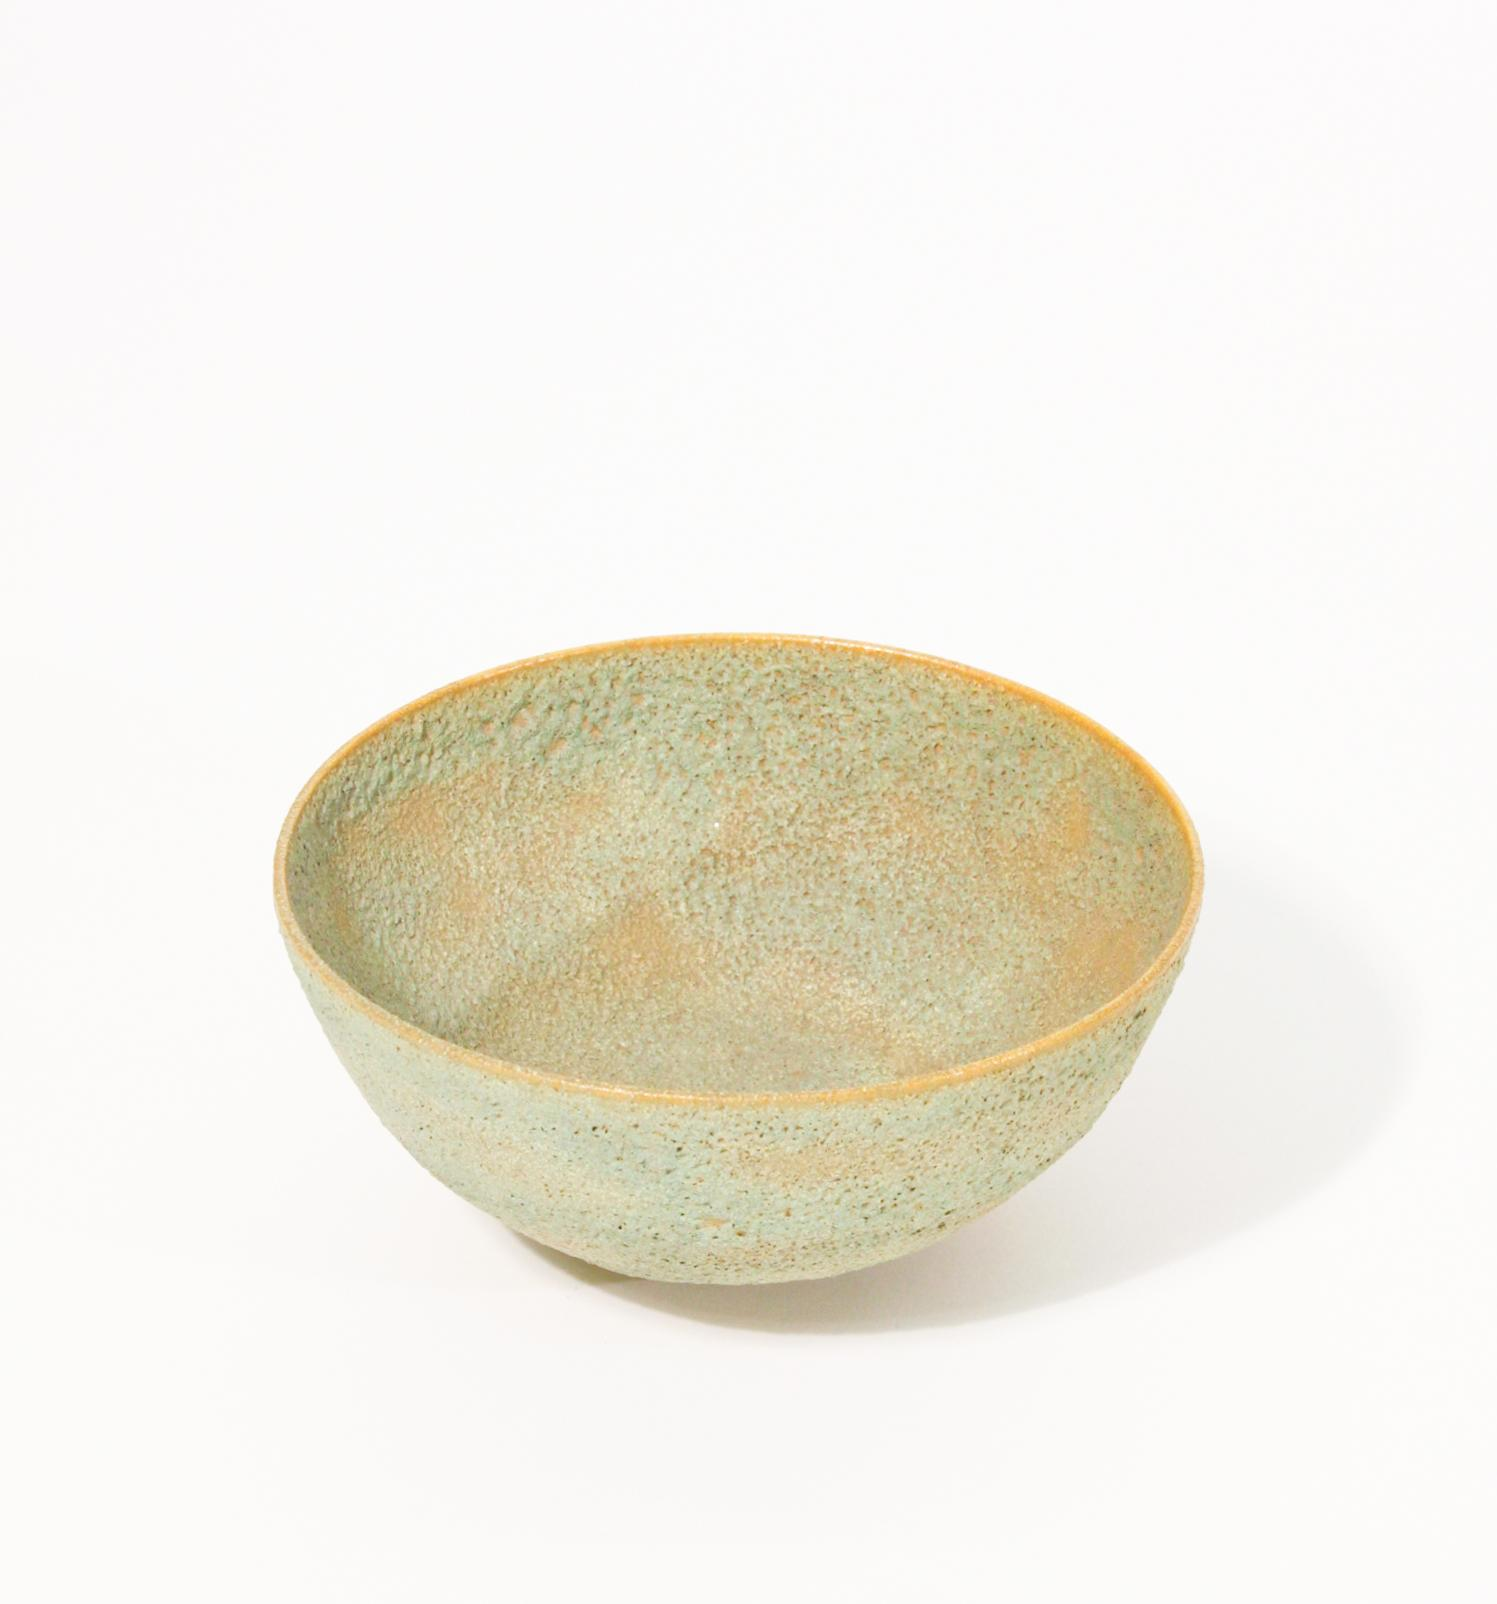 Gertrud and Otto Natzler  Ceramic Bowl 2